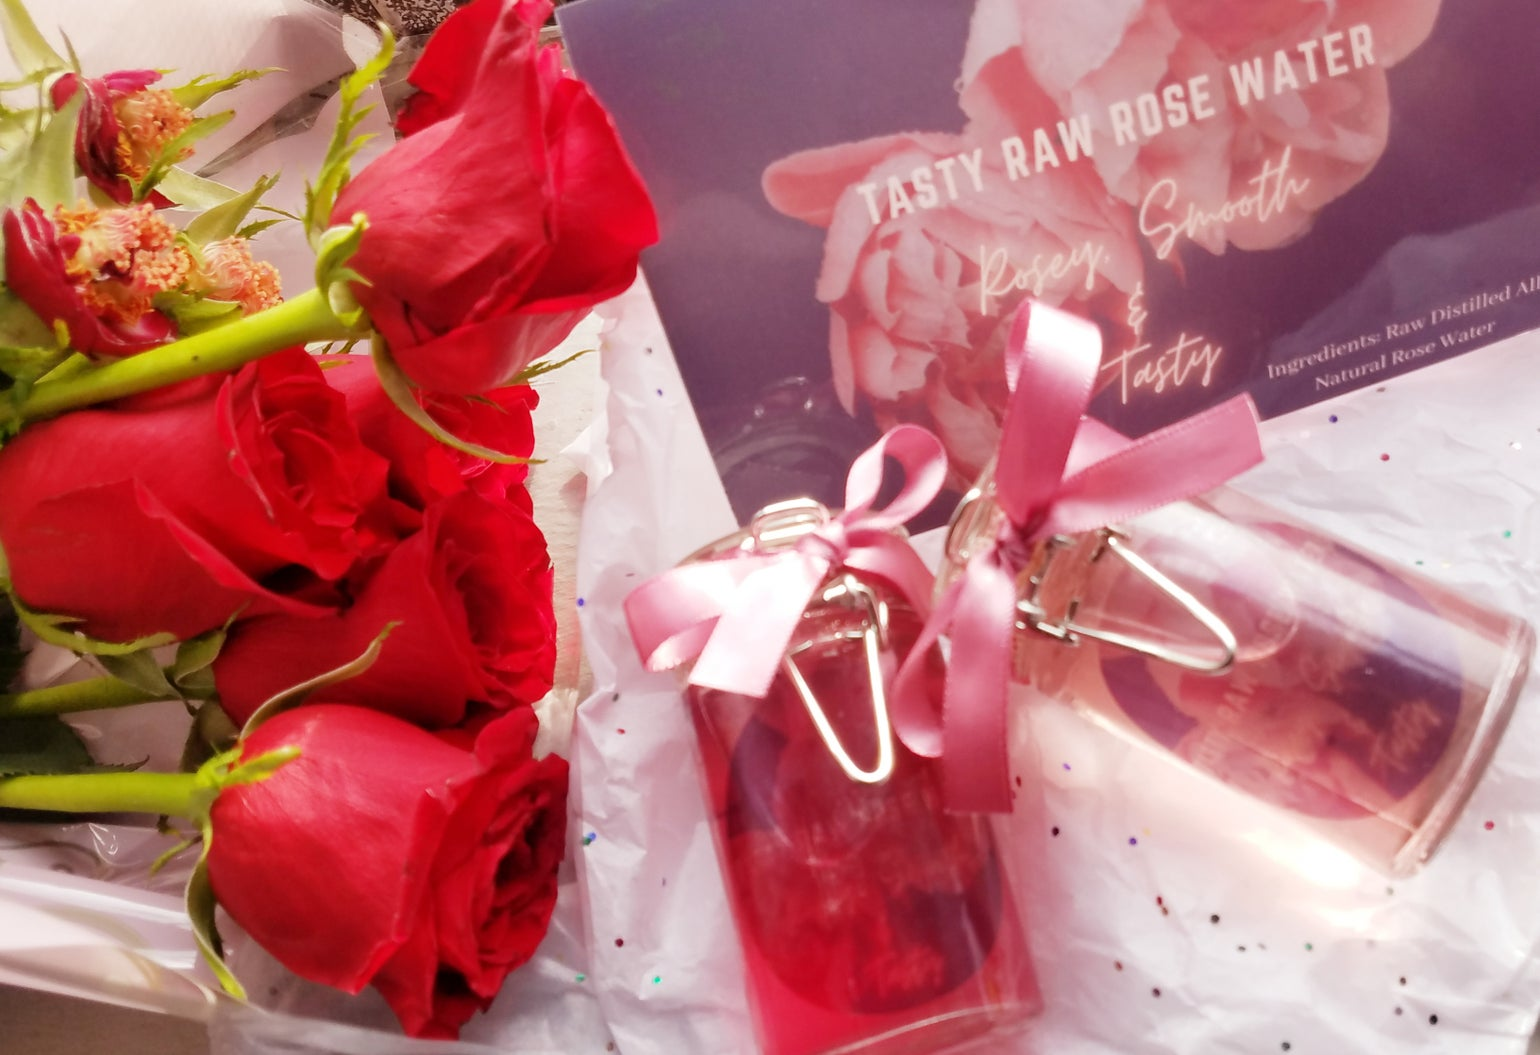 Image of Tasty Raw Rose Water